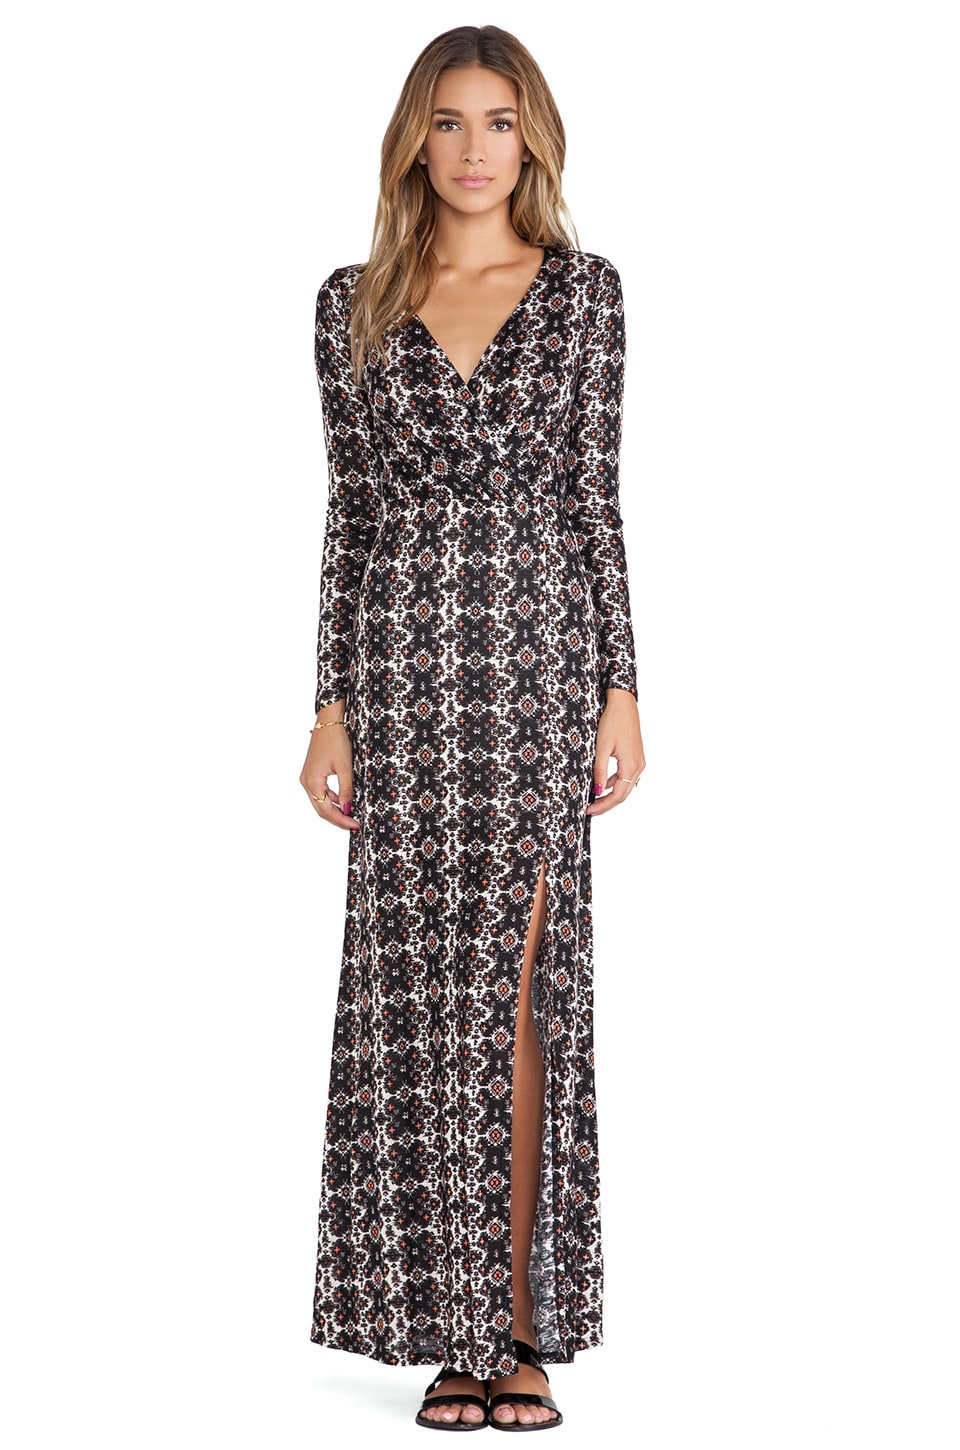 Ella Moss Joella Maxi Dress in Black